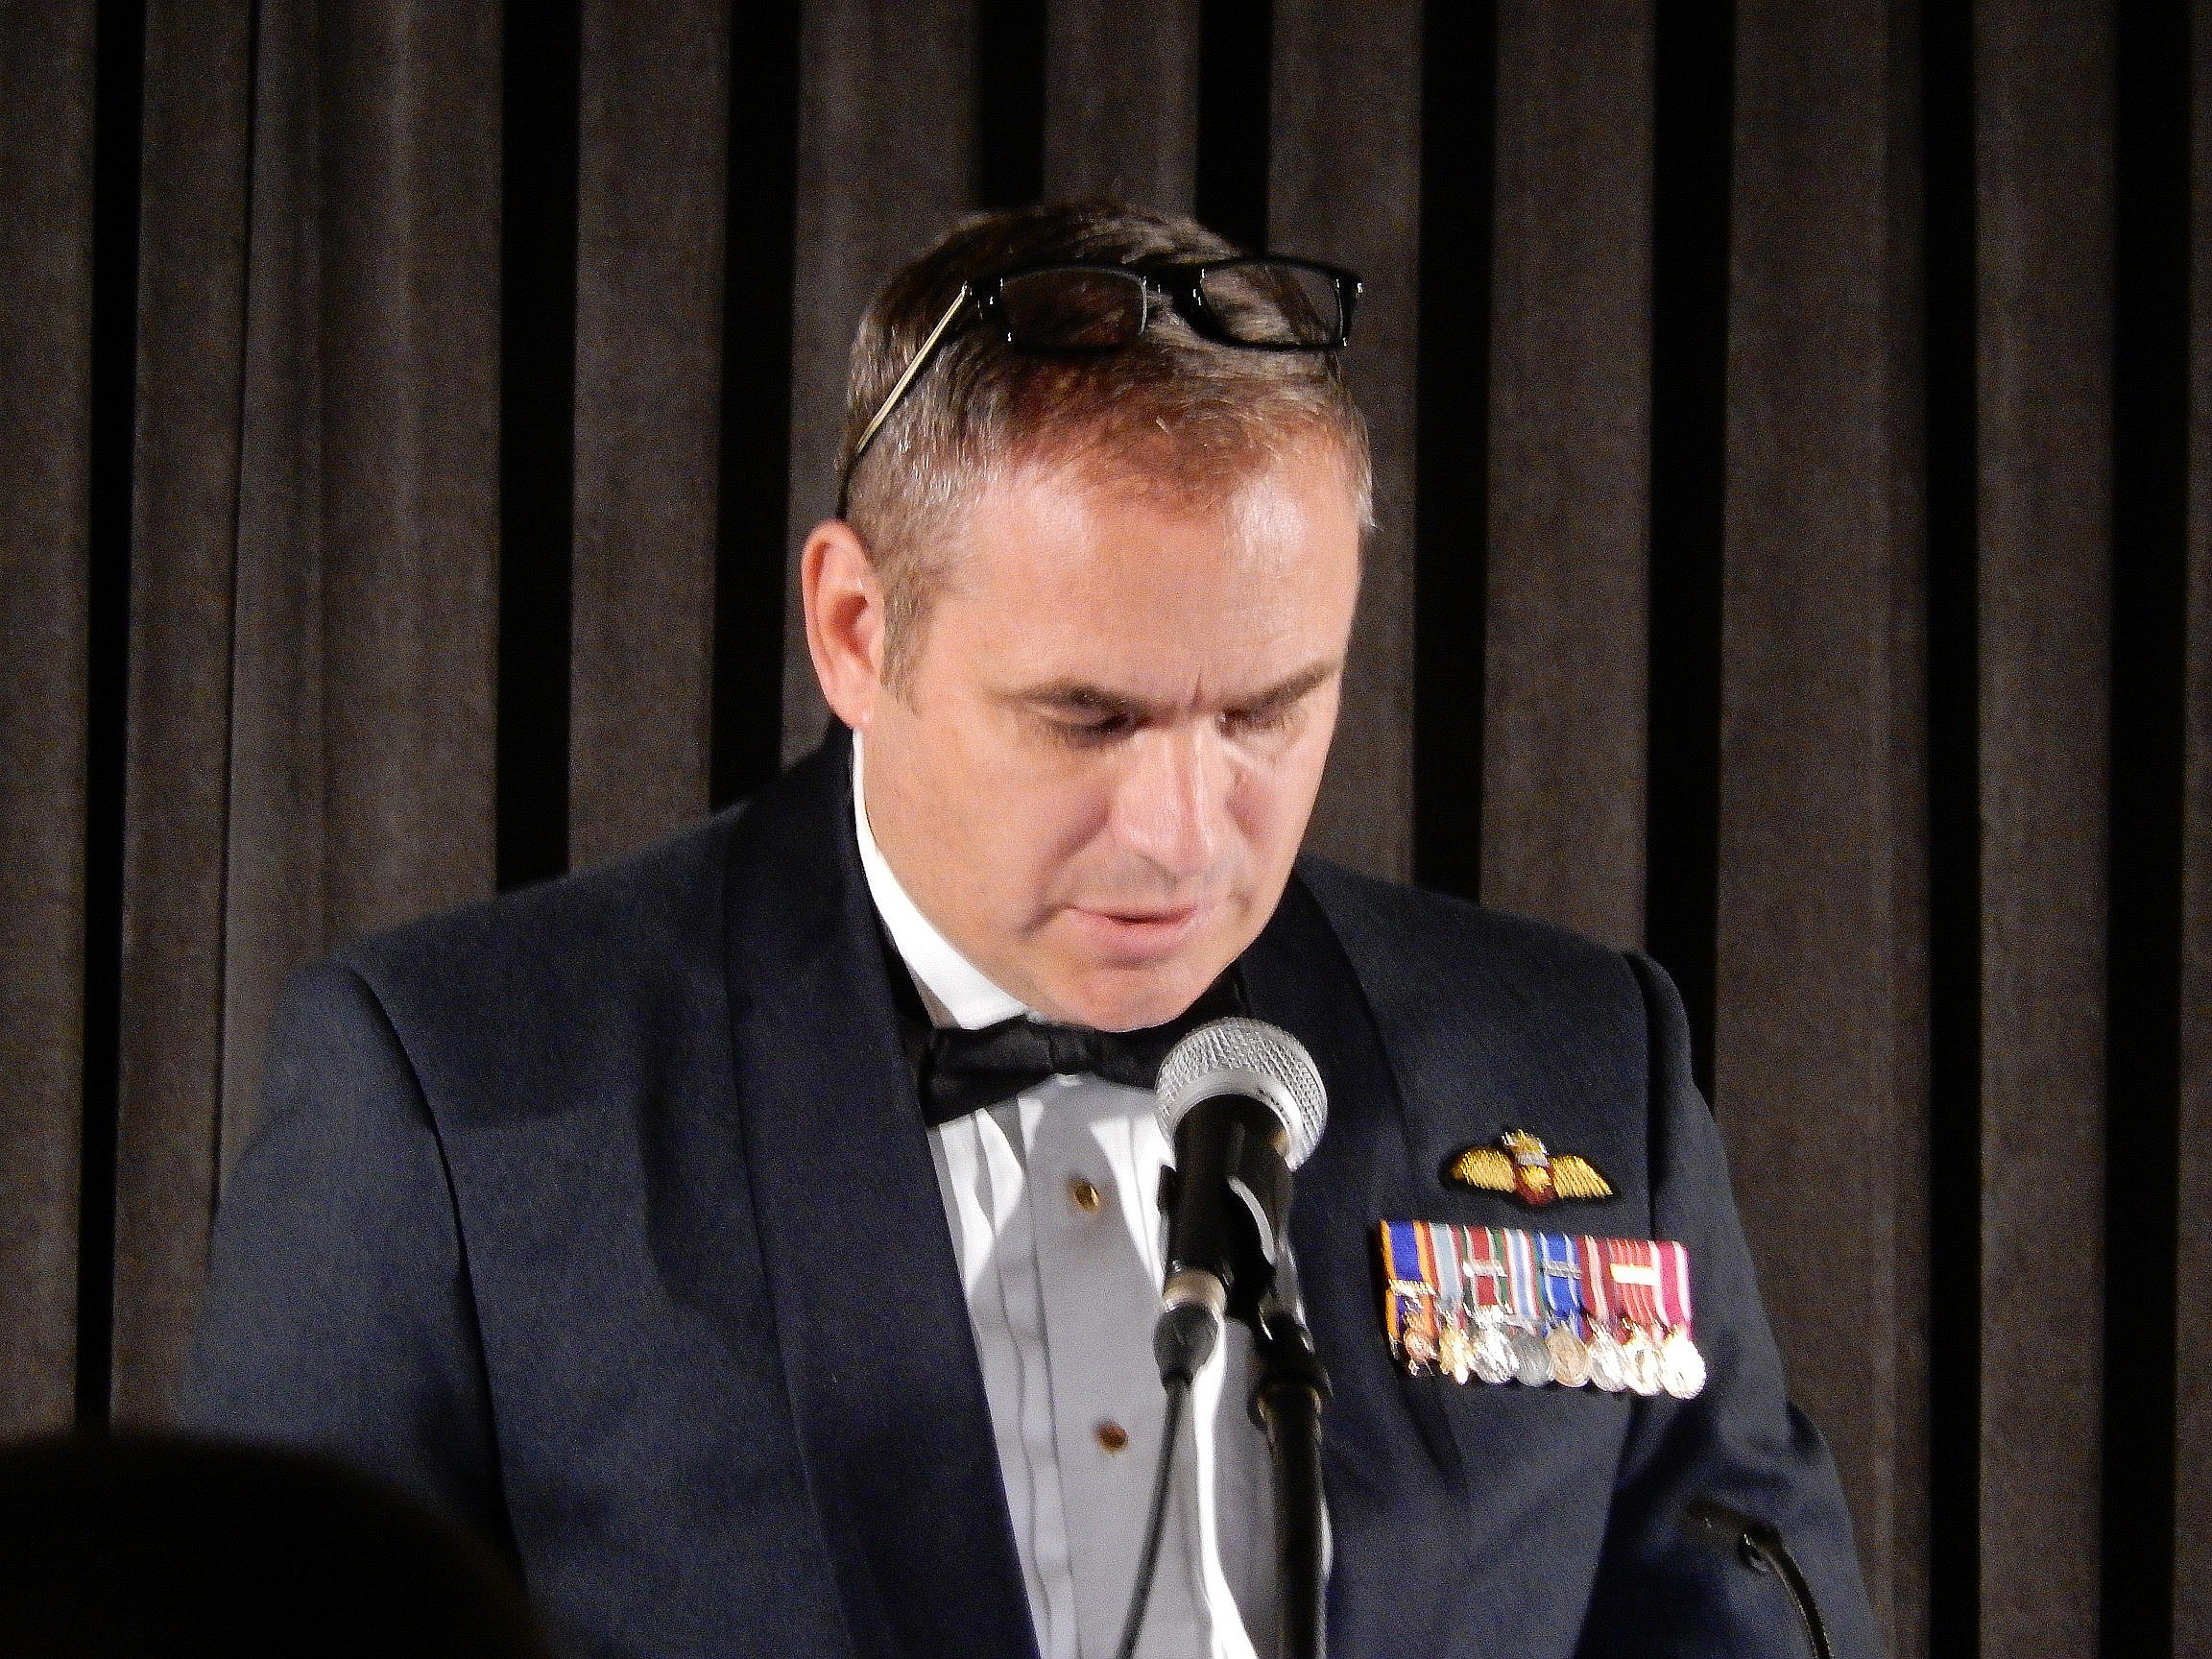 Major-General Blaise Frawley, deputy commander of the RCAF, paid tribute to the Golden Hawks, speaking of their place in Canadian air force history. PHOTO: John Chalmers